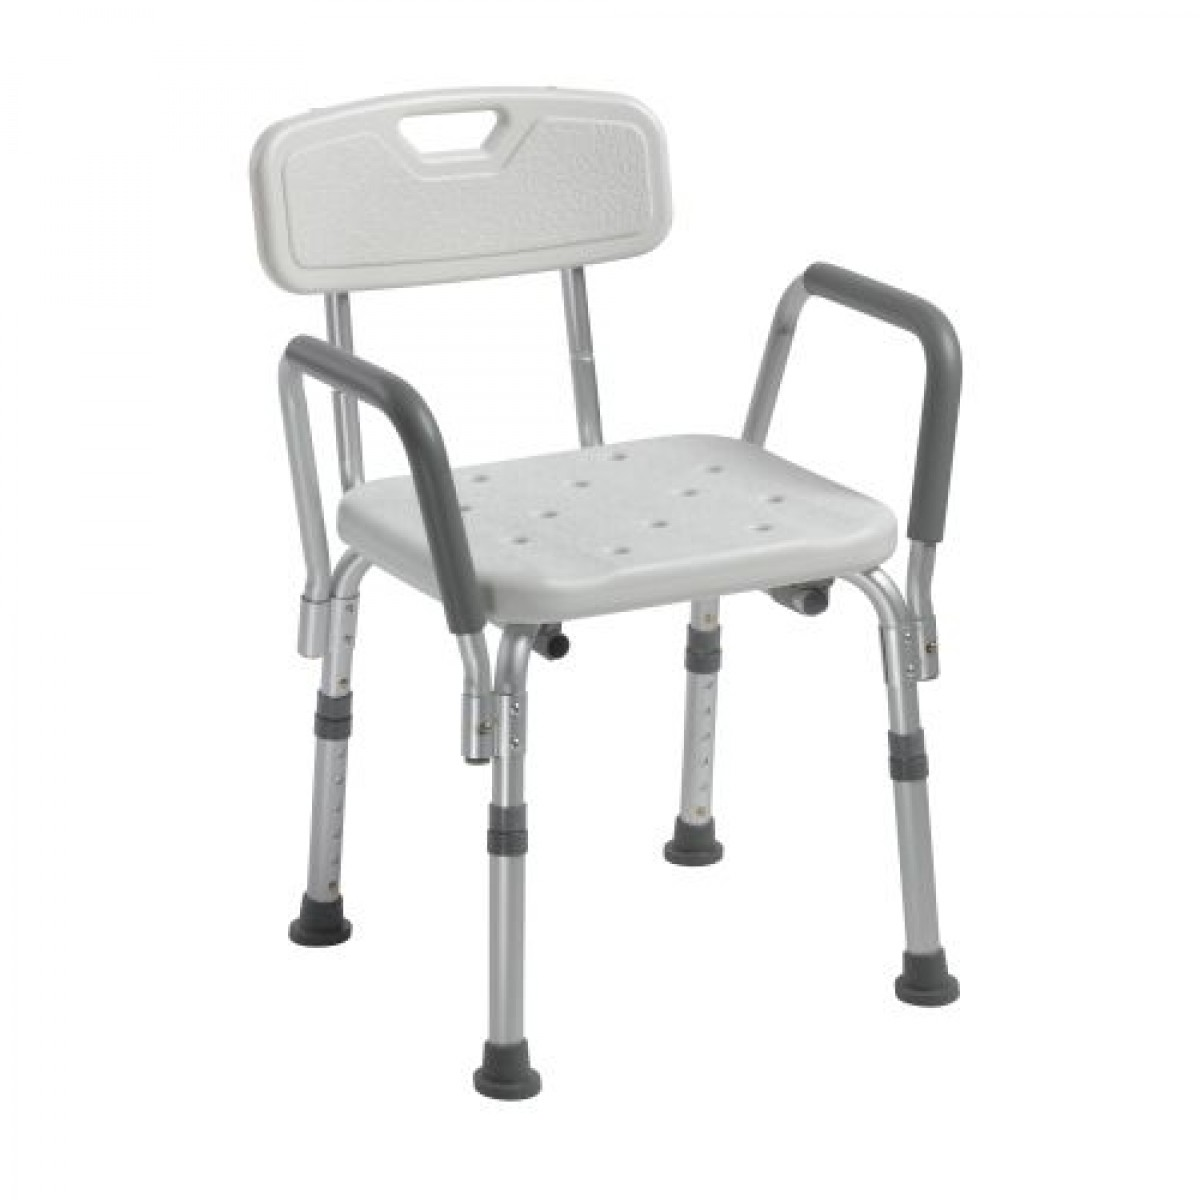 Knock Down Bath Bench With Back And Padded Arms By Drive Medical 12445kd 1